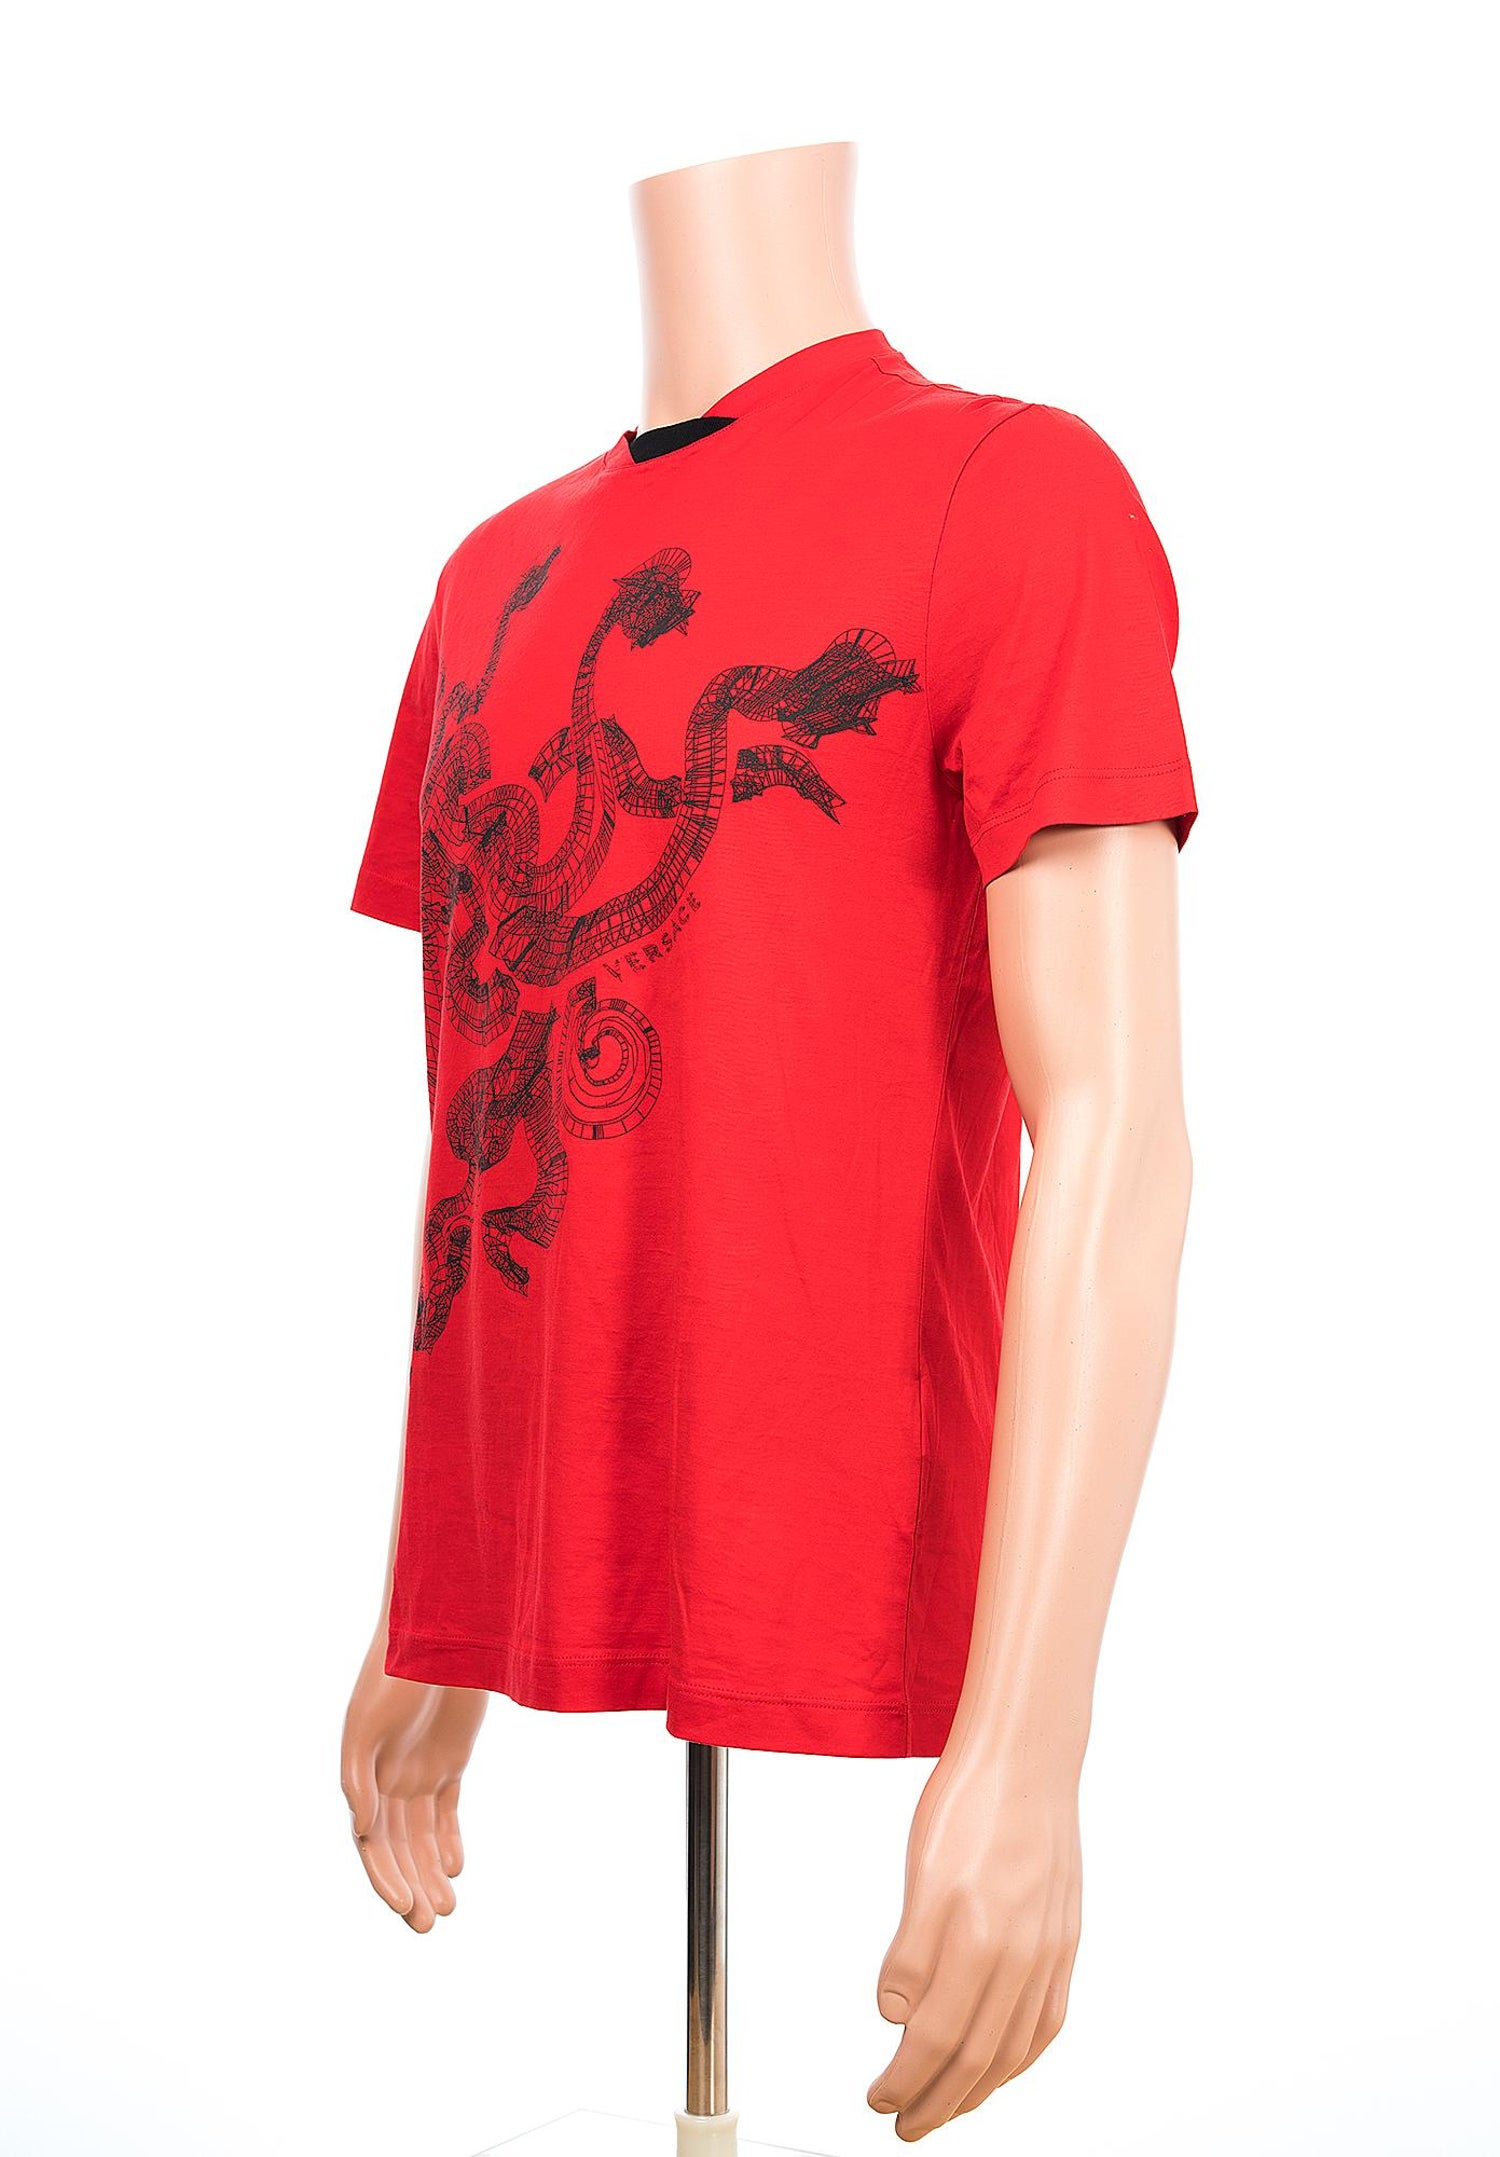 40bc29f9 New VERSACE Red T-Shirt with Three-Headed Dragon for Men For Sale at 1stdibs